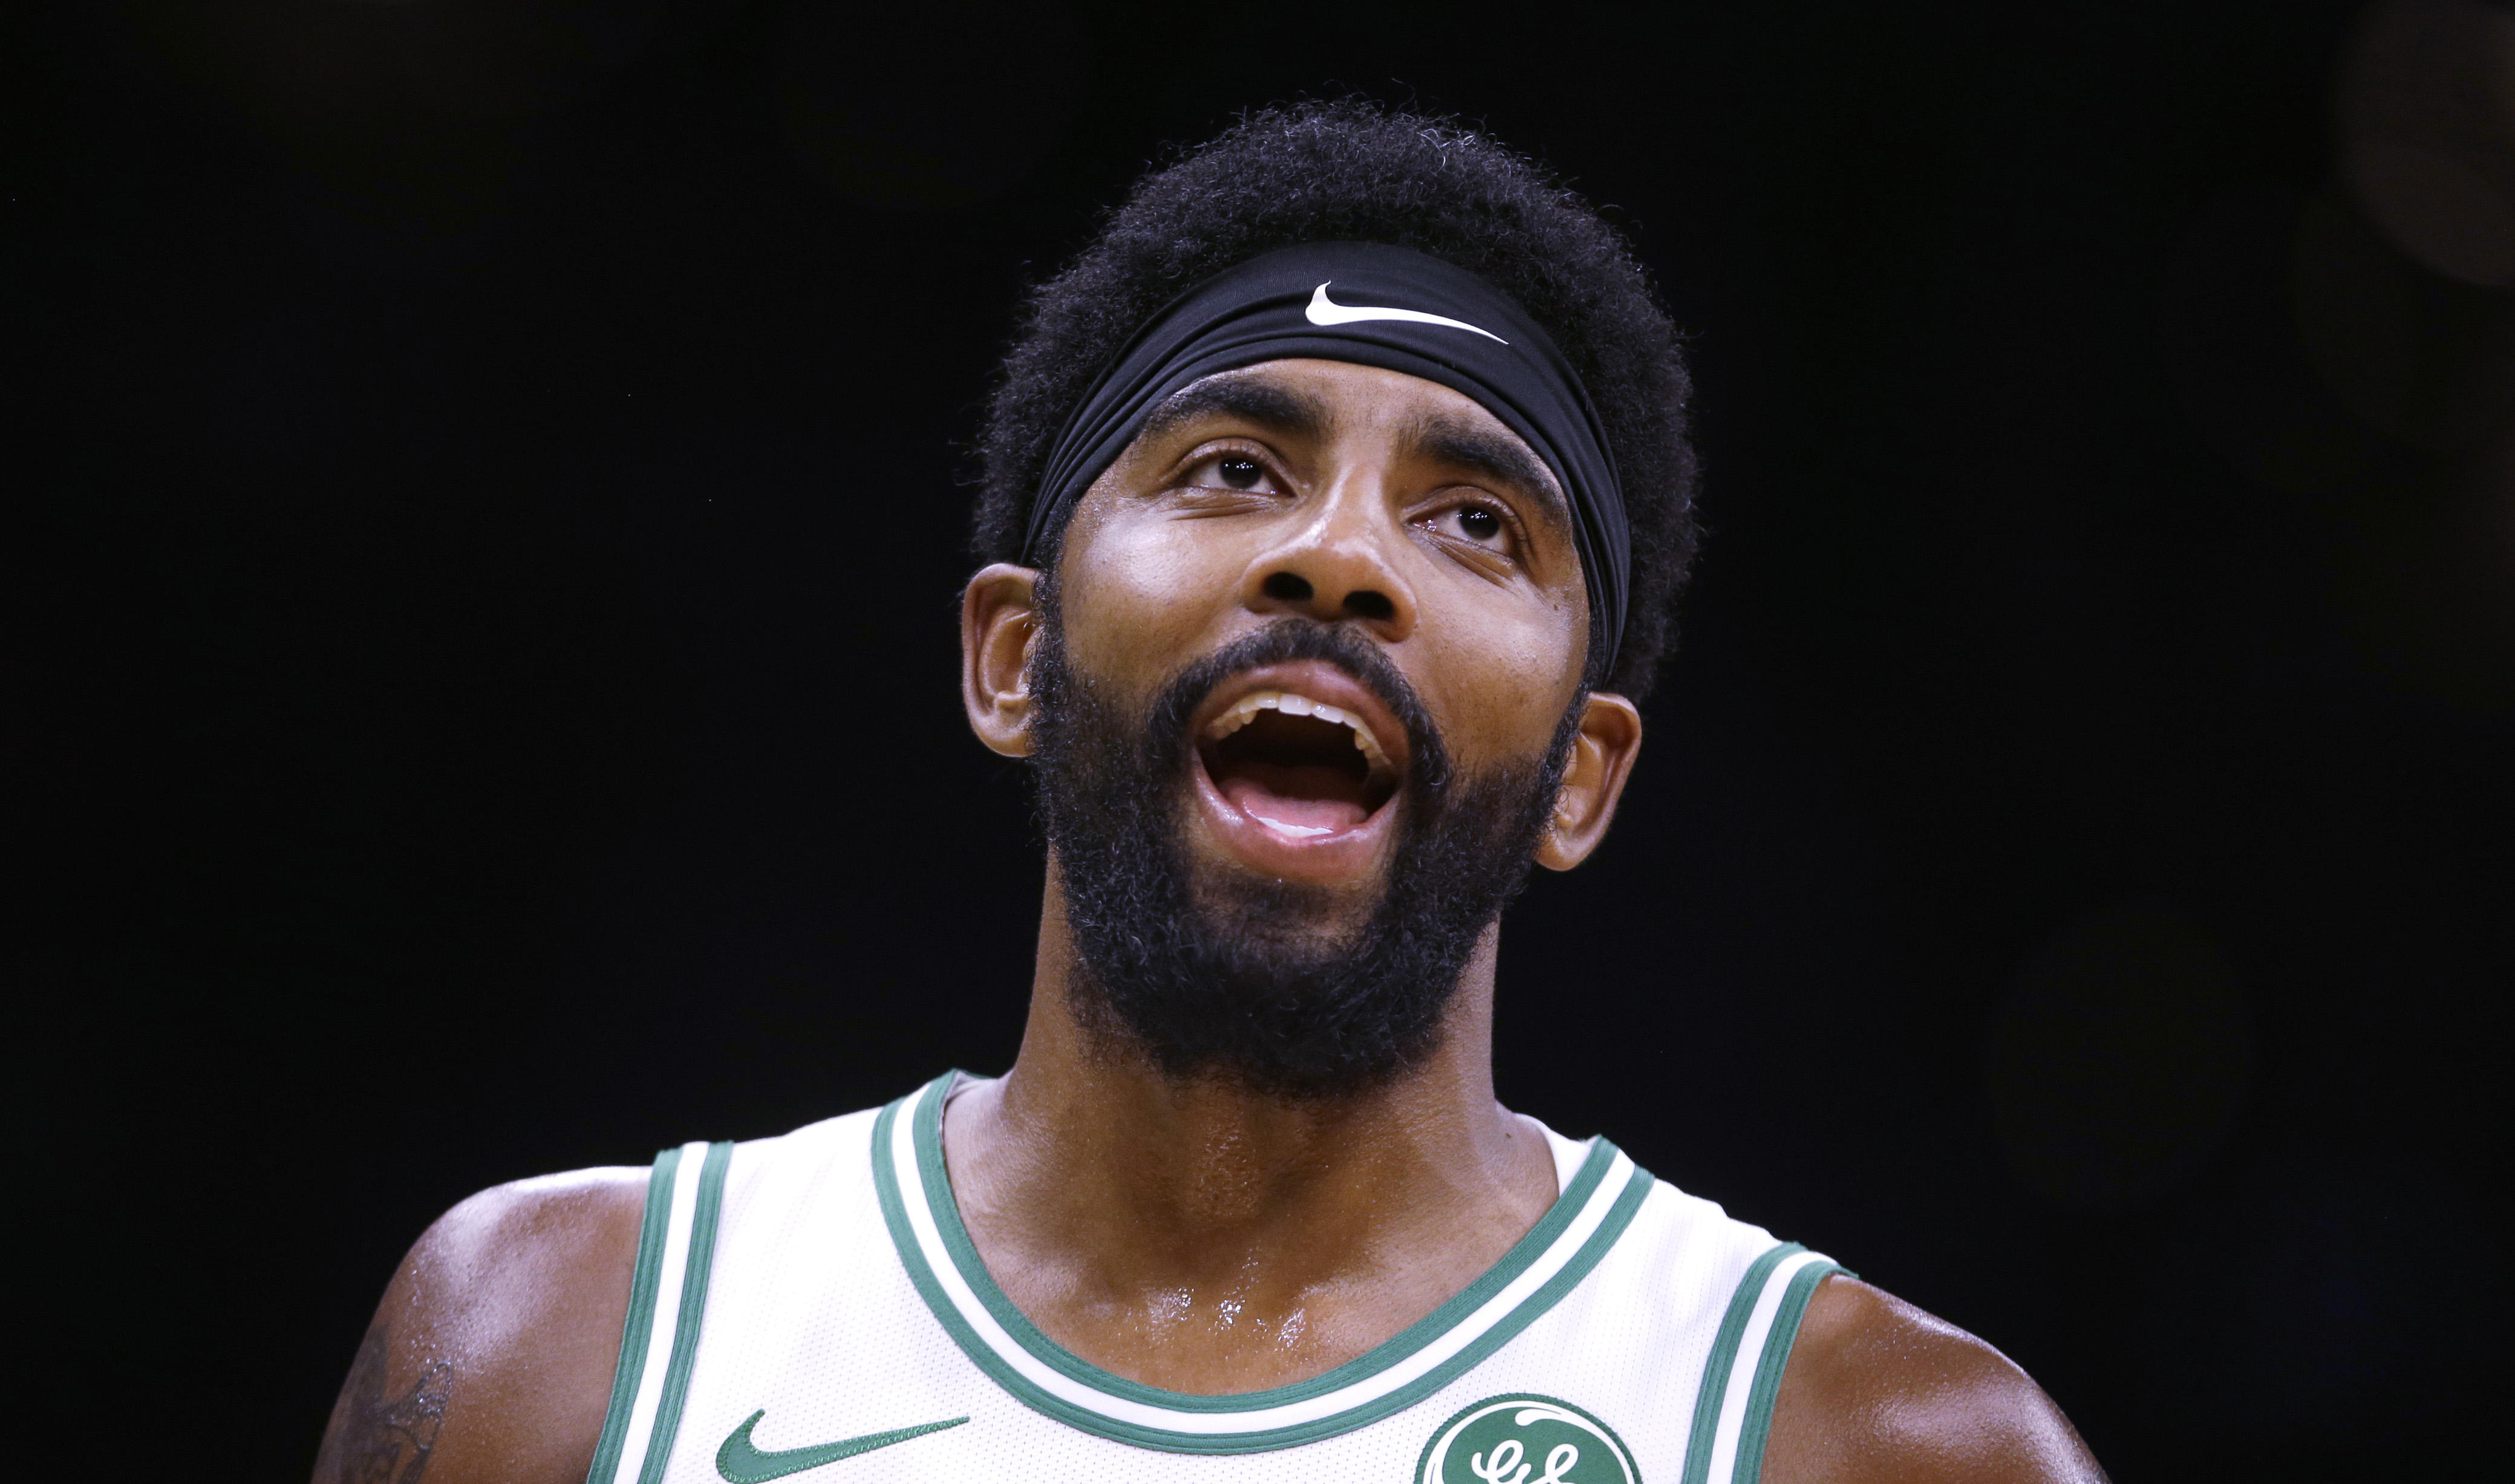 c529c5d67d44 NBA star Kyrie Irving apologizes for saying Earth is flat